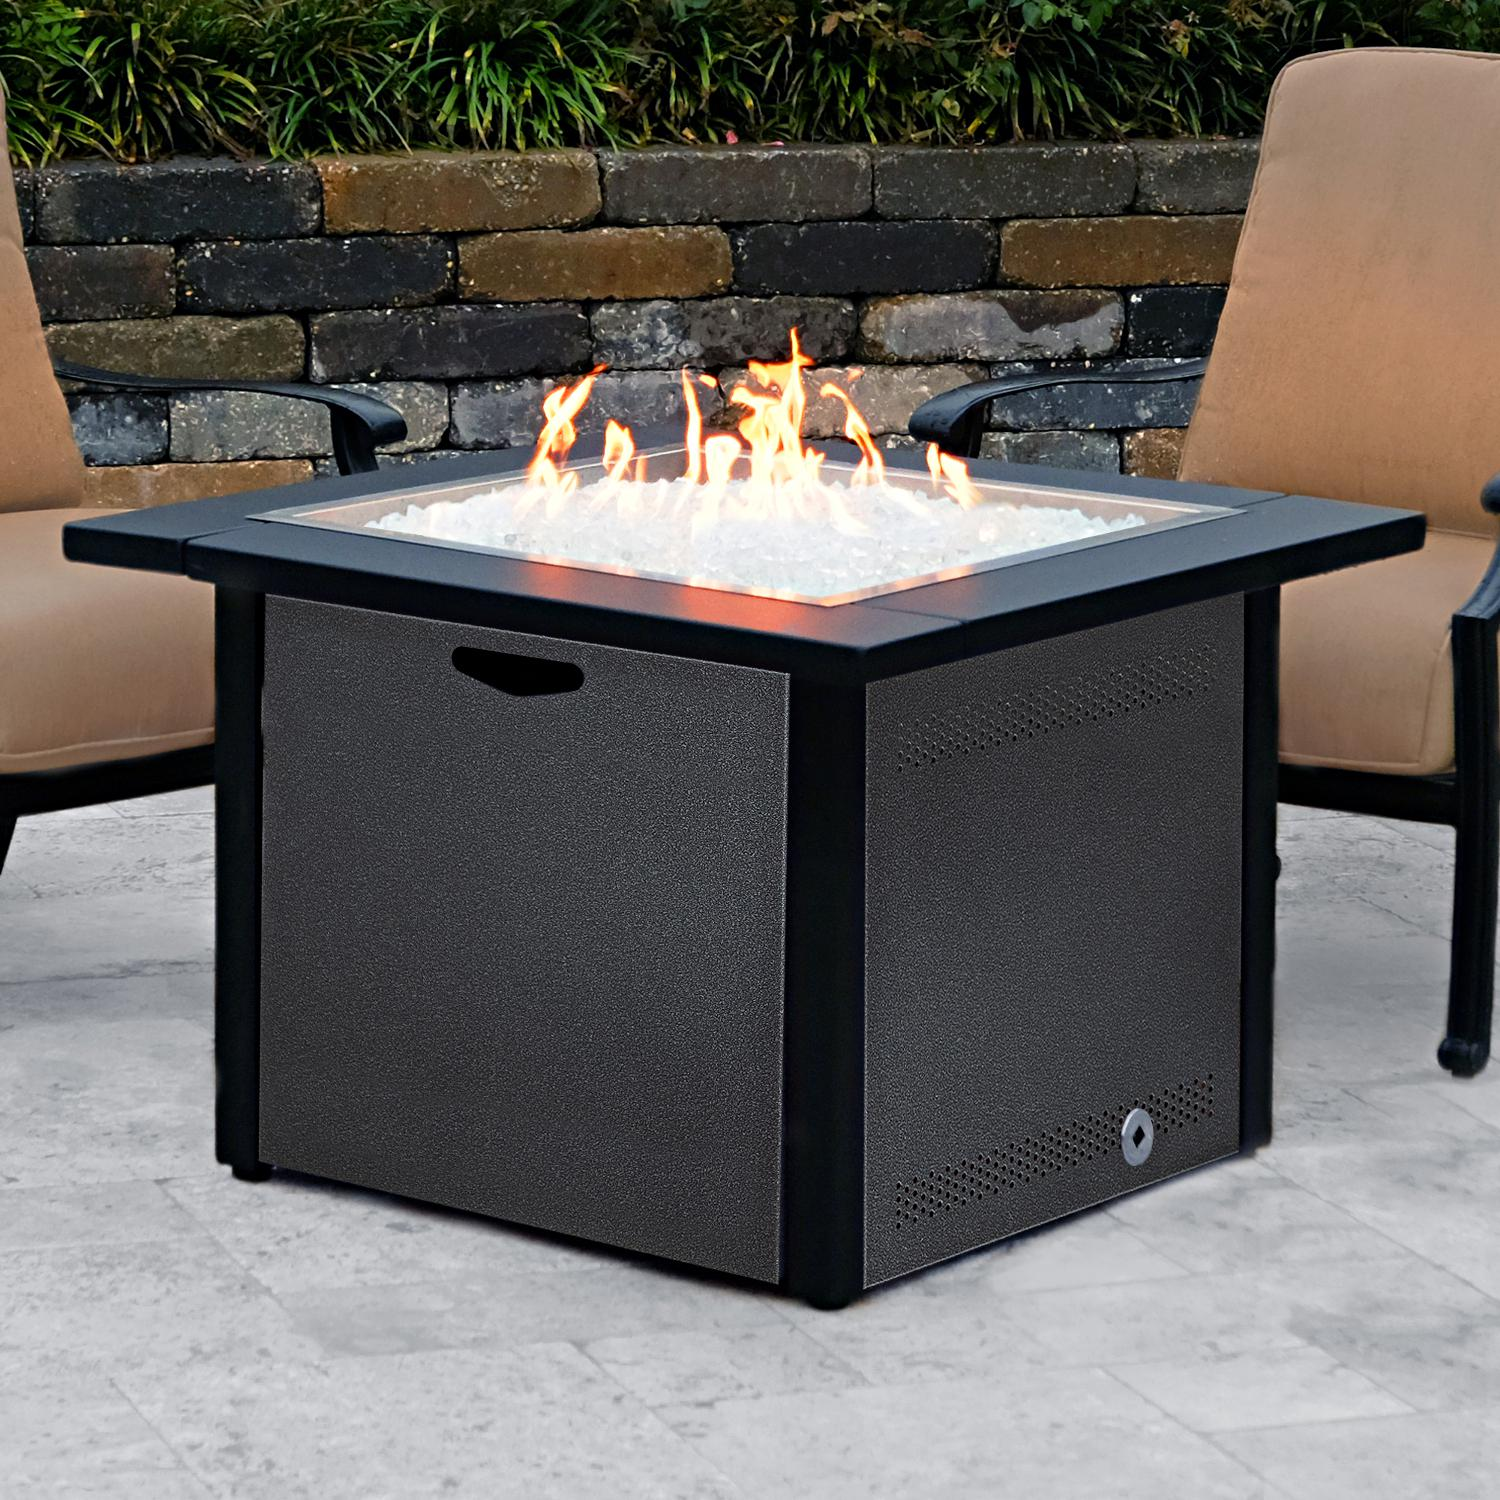 Lakeview 36 Square Propane Gas Fire Pit Table W 24 Pan And Burner Silver Vein Ch 36fp A Lp Sv Fire Pit Table Gas Fire Pit Table Natural Gas Fire Pit